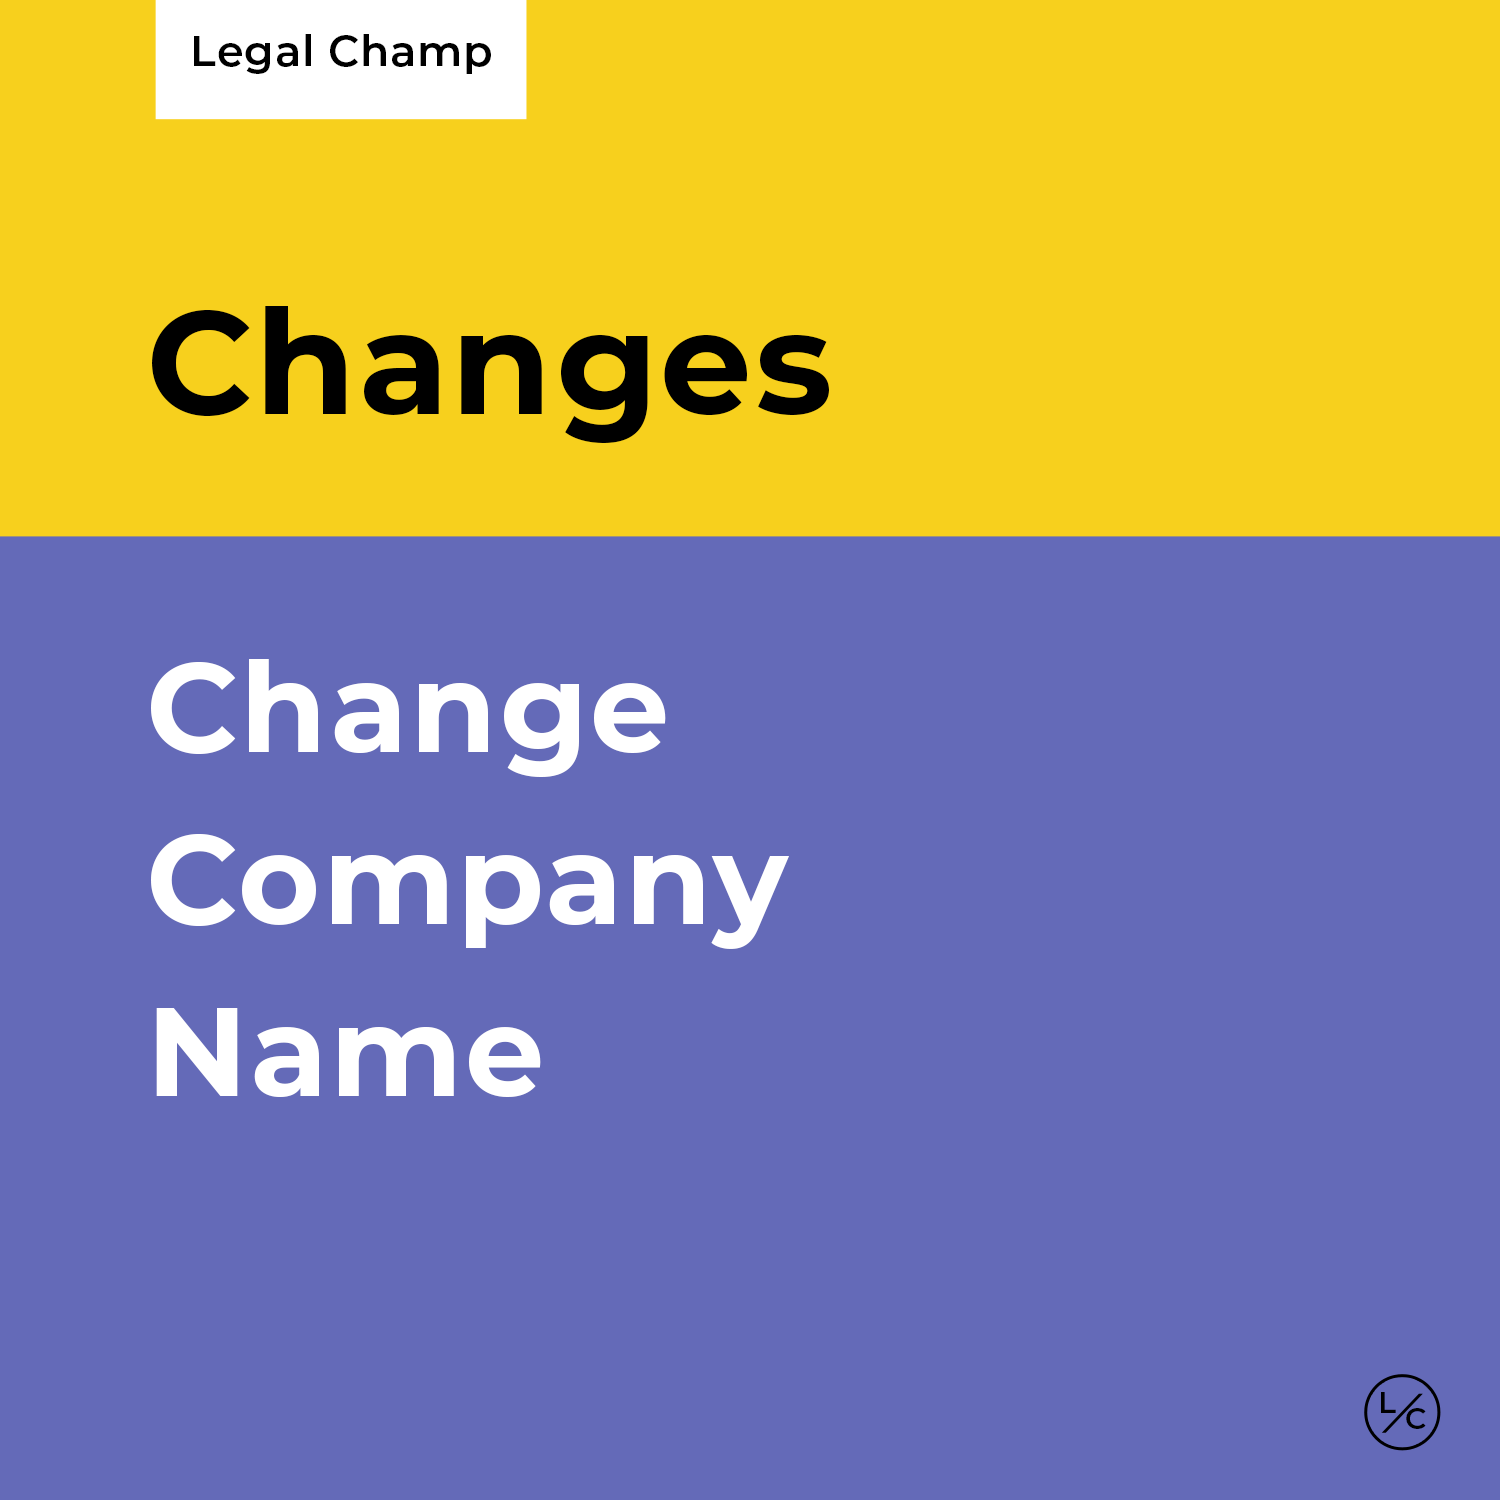 Change Company Name